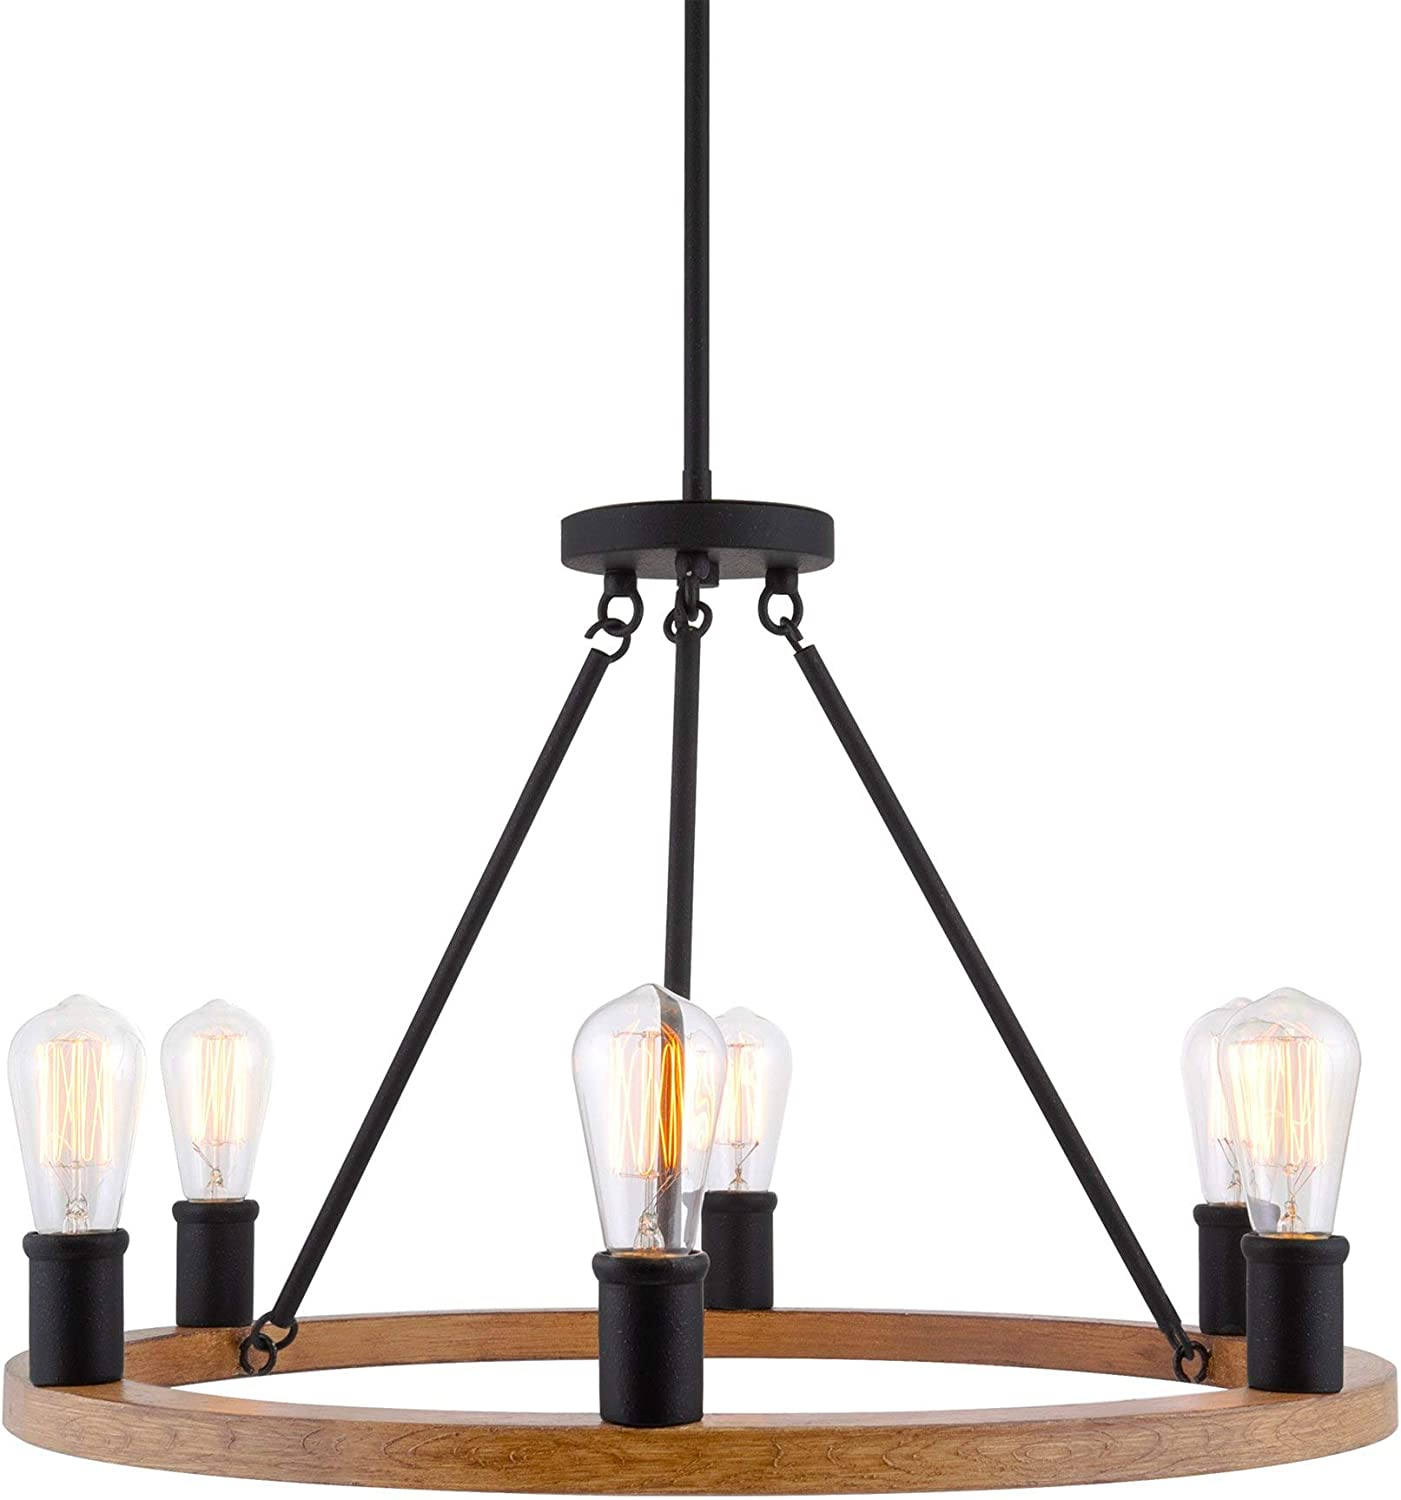 Kira Home Jericho 25 6 Light Large Rustic Farmhouse Wagon Wheel Chandelier Round Kitchen Island Light Textured Black Accents Warm Oak Wood Style Finish